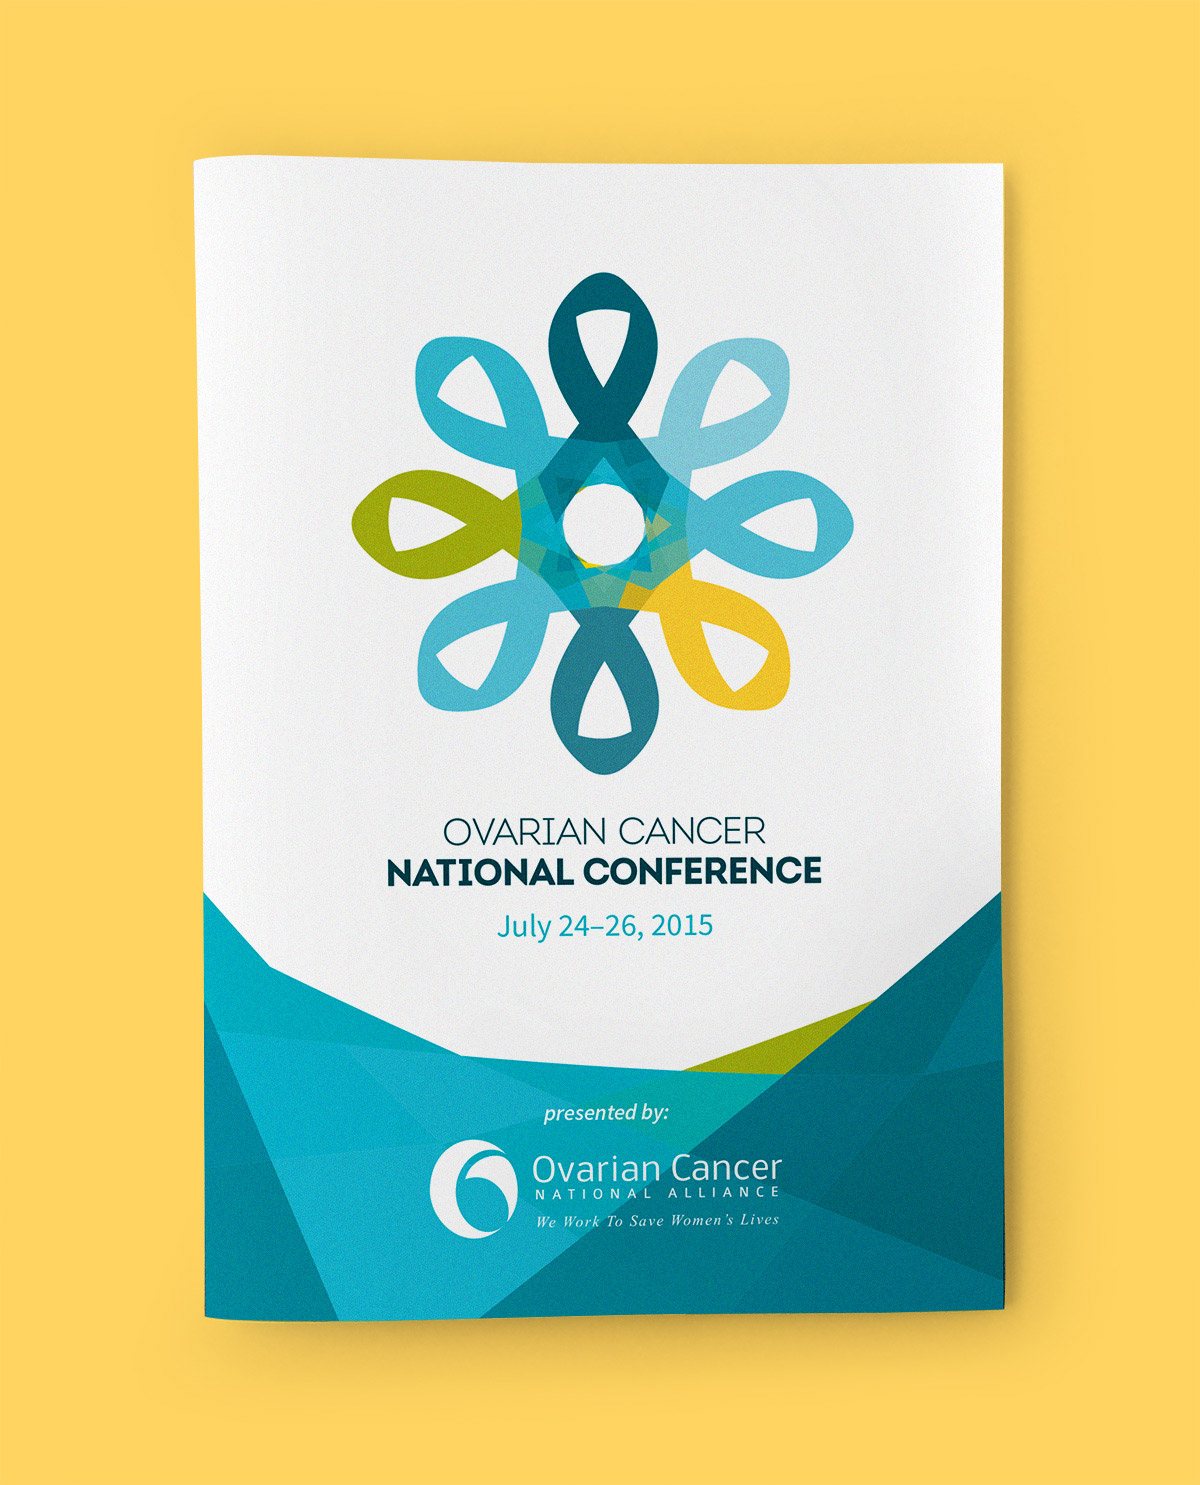 Detail of cover of program for Ovarian Cancer National Conference